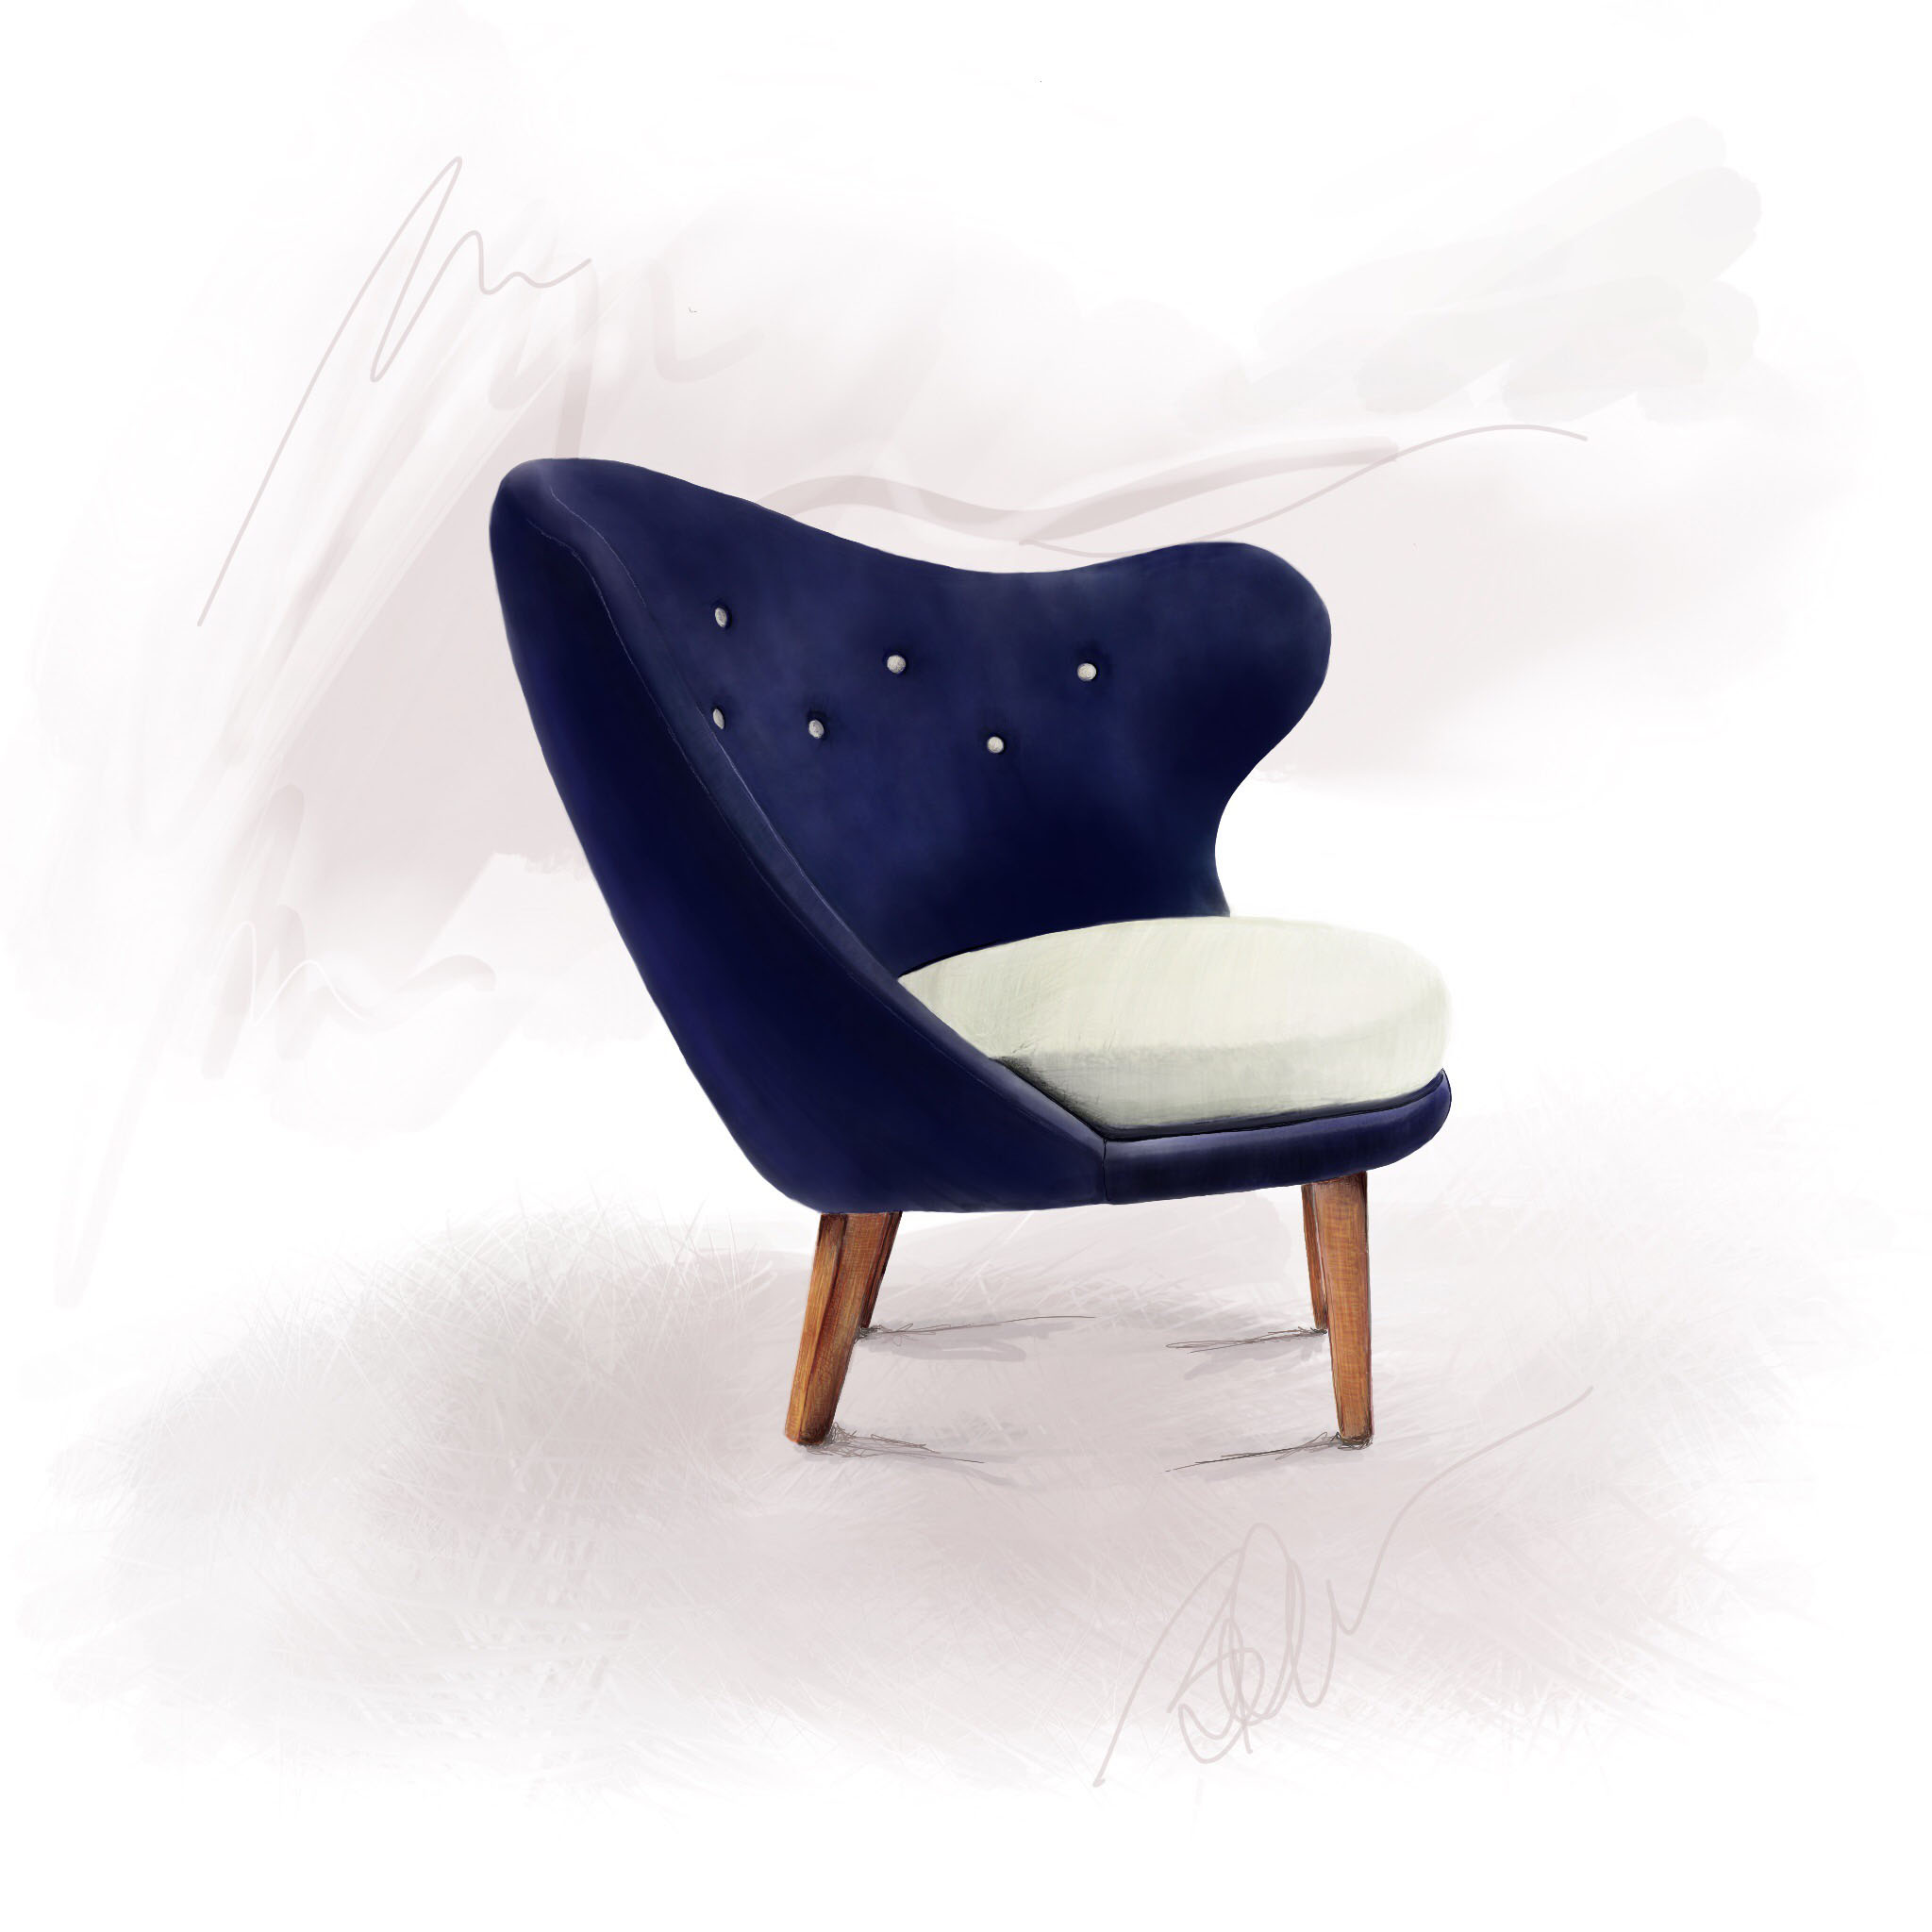 Digital sketch of a circa 1940's Mid-Century 'Thumb Chair' by Arne Norell